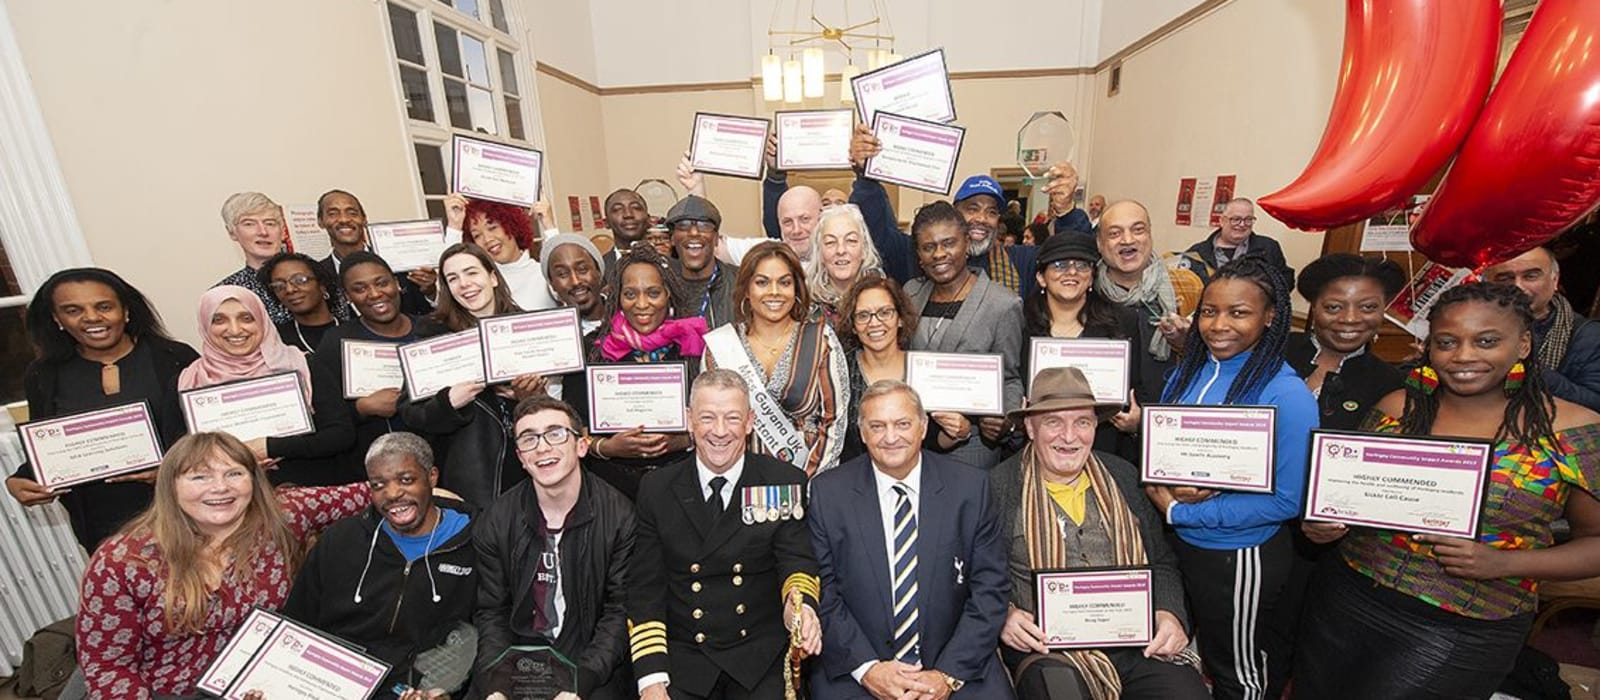 Nominate your organisation for the Haringey Giving Funded Project of the Year Award!